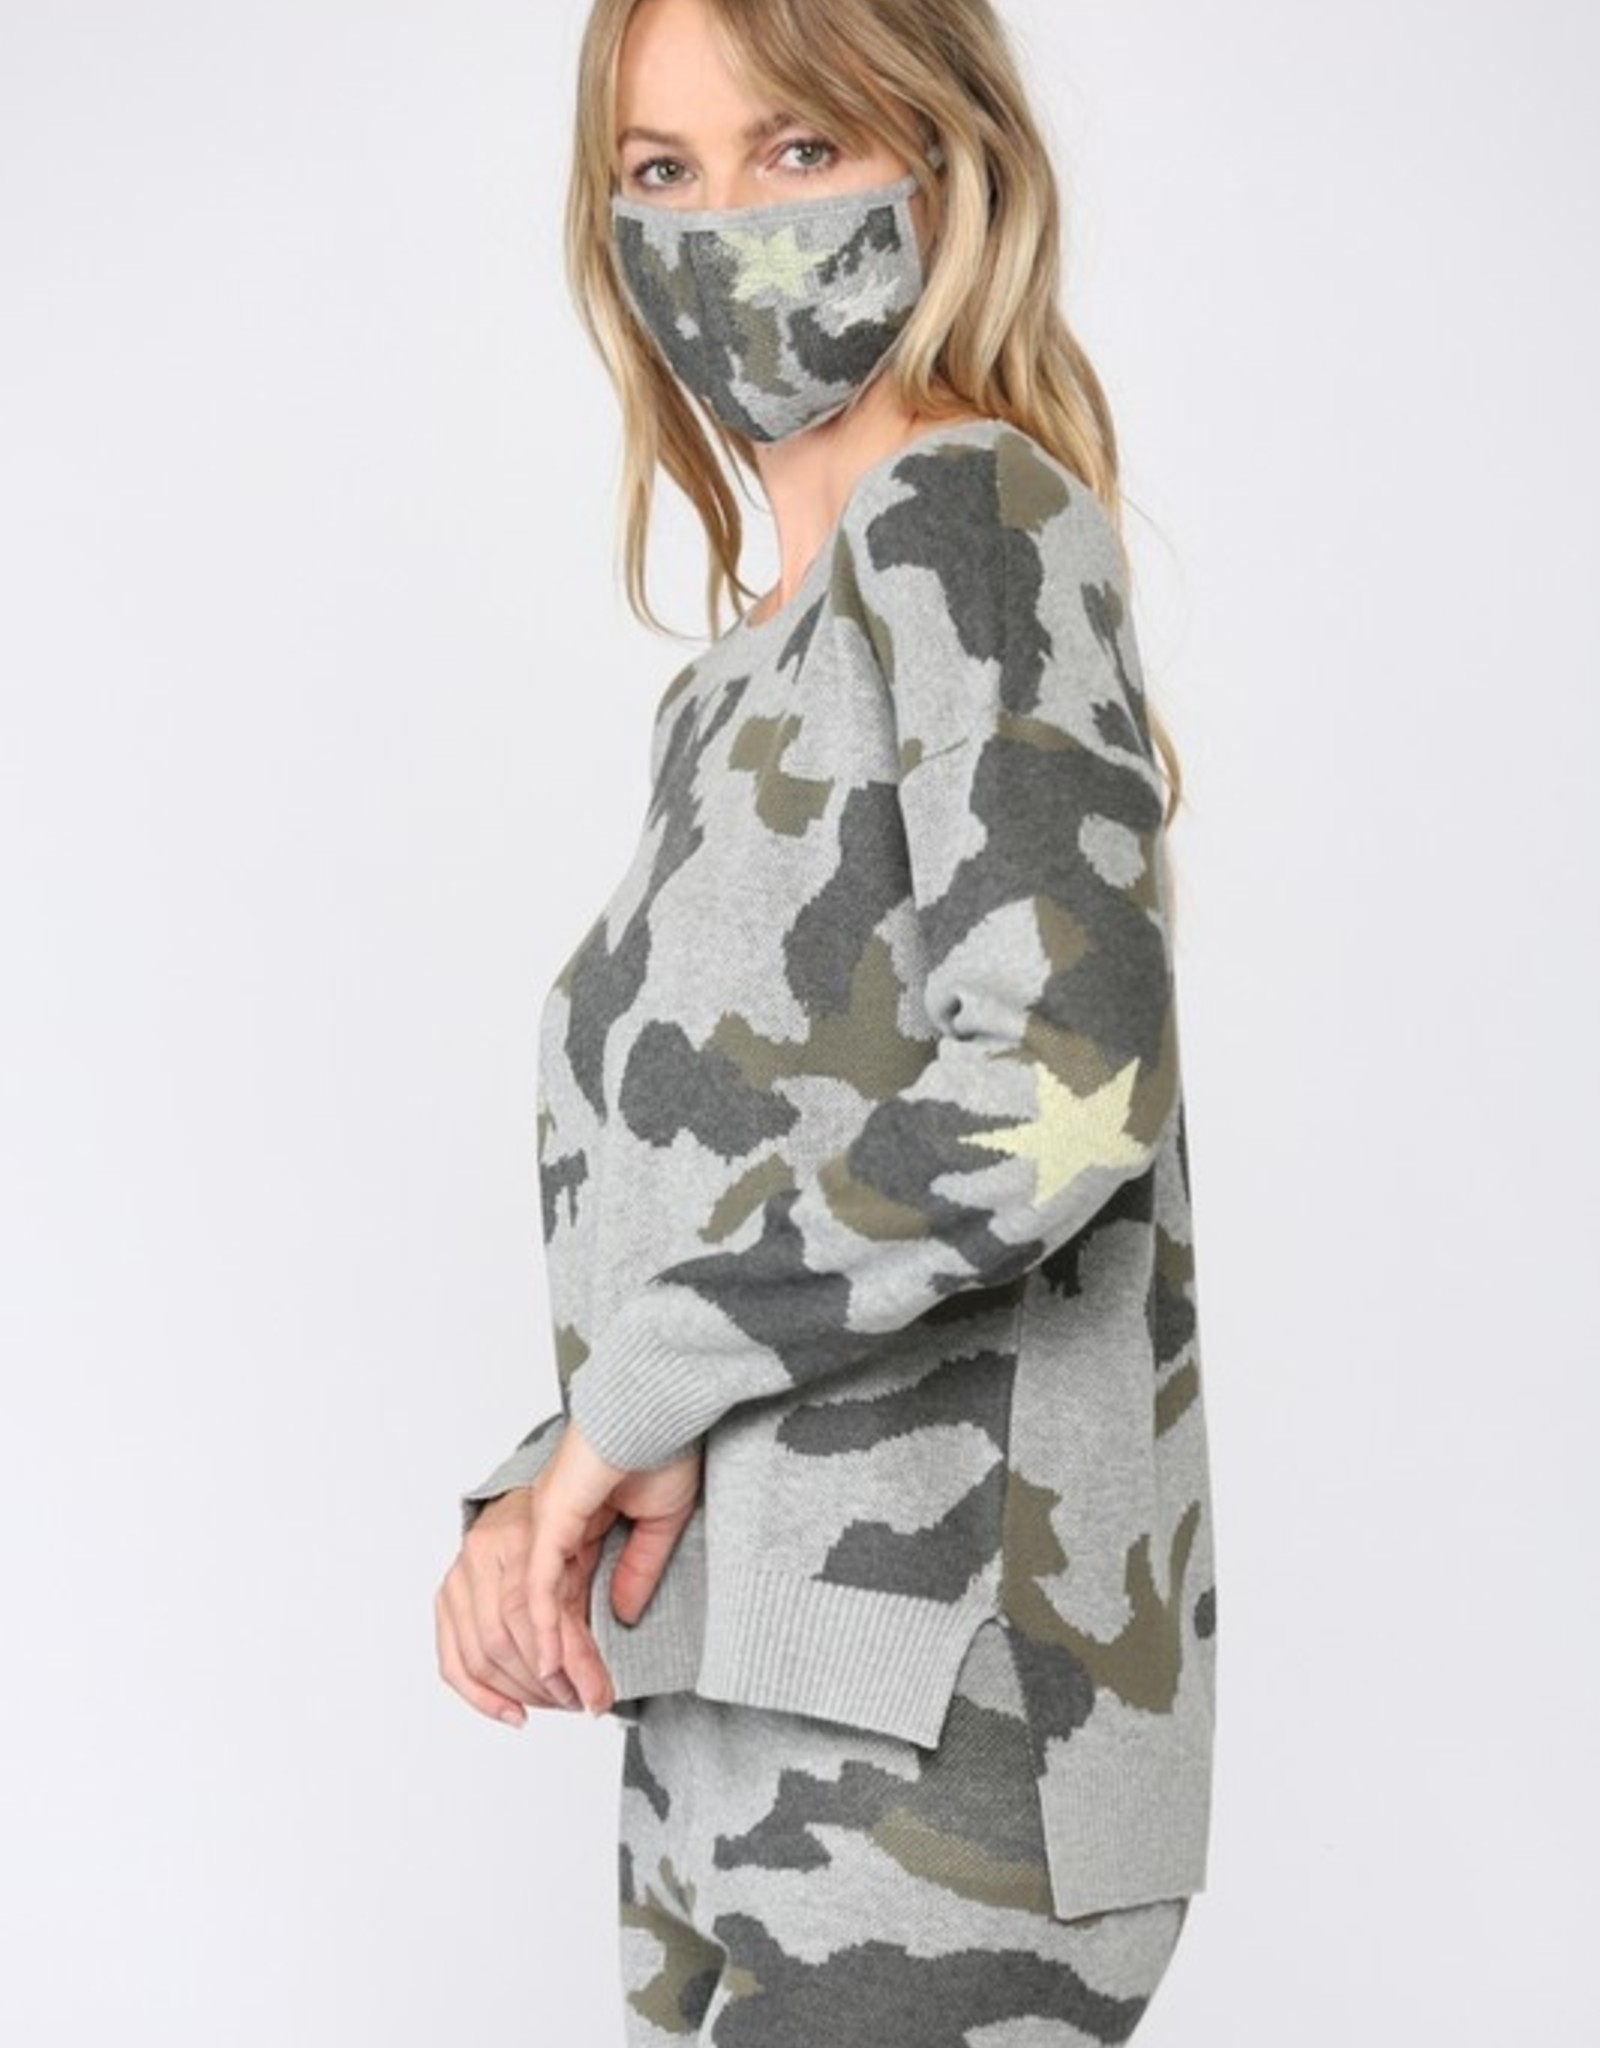 Camo sweater and mask